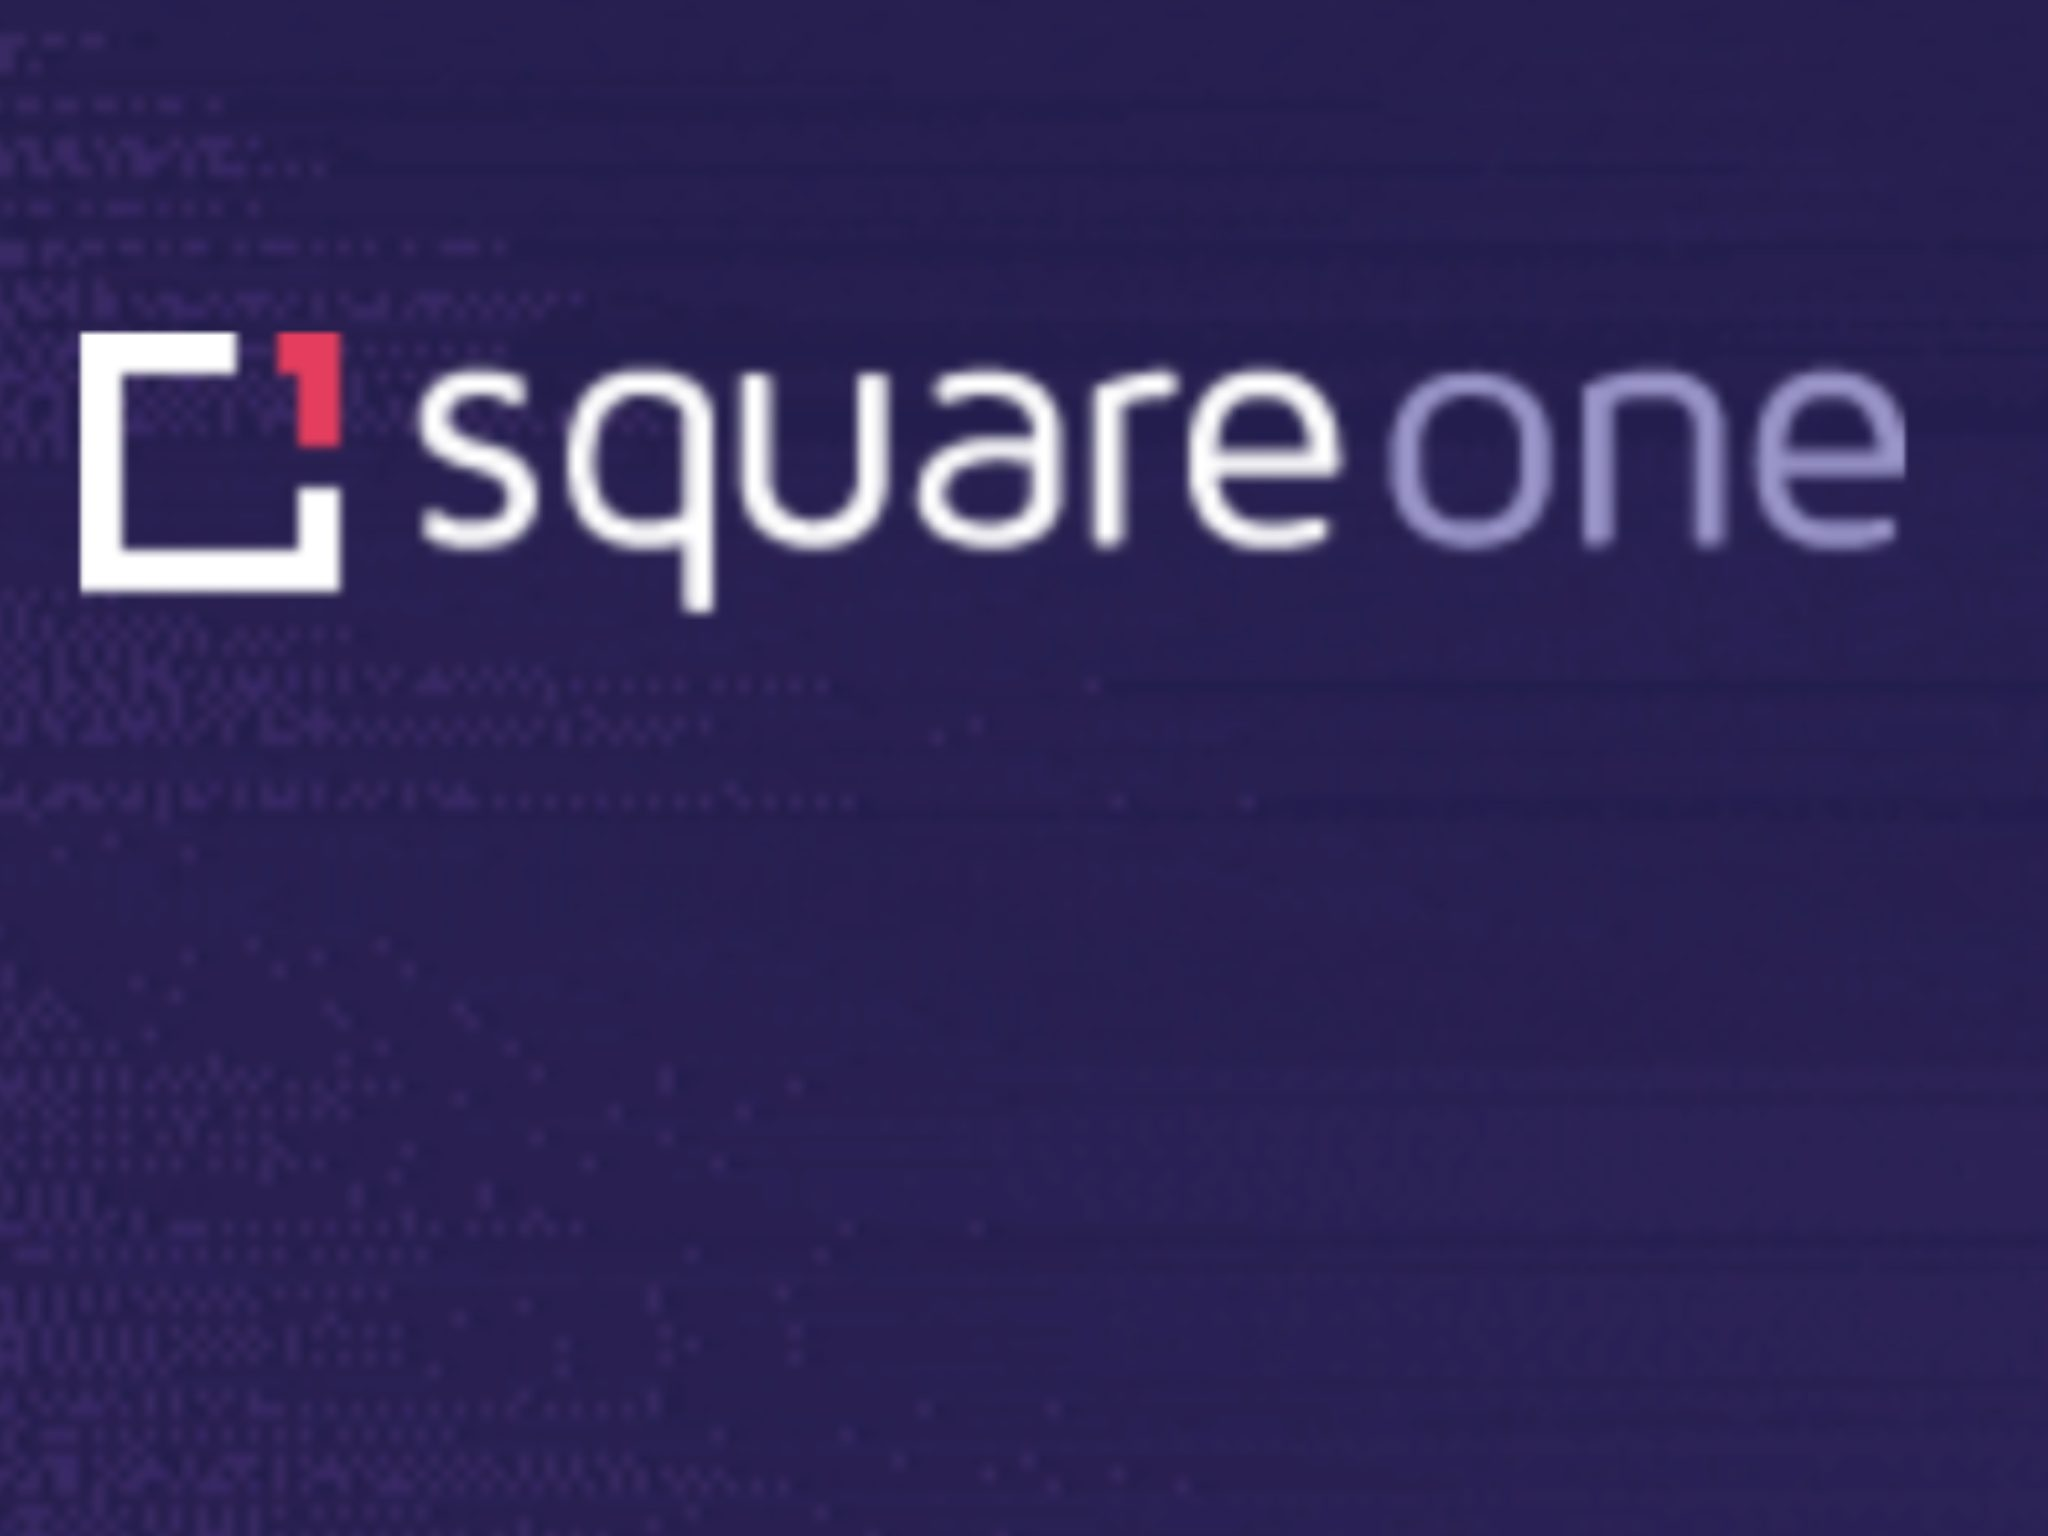 The right Host is key to online success ie square one digital